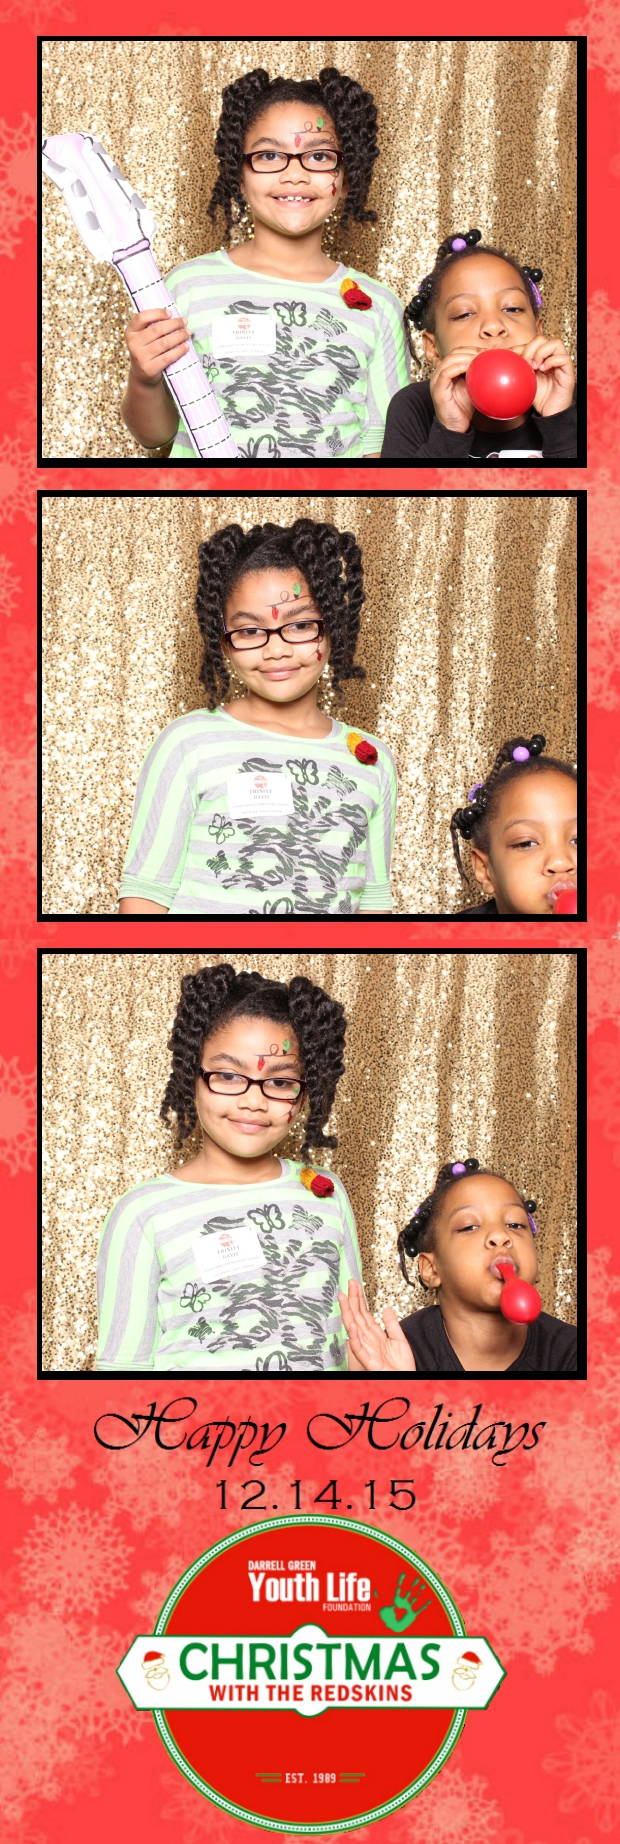 Guest House Events Photo Booth DGYLF Strips (37).jpg